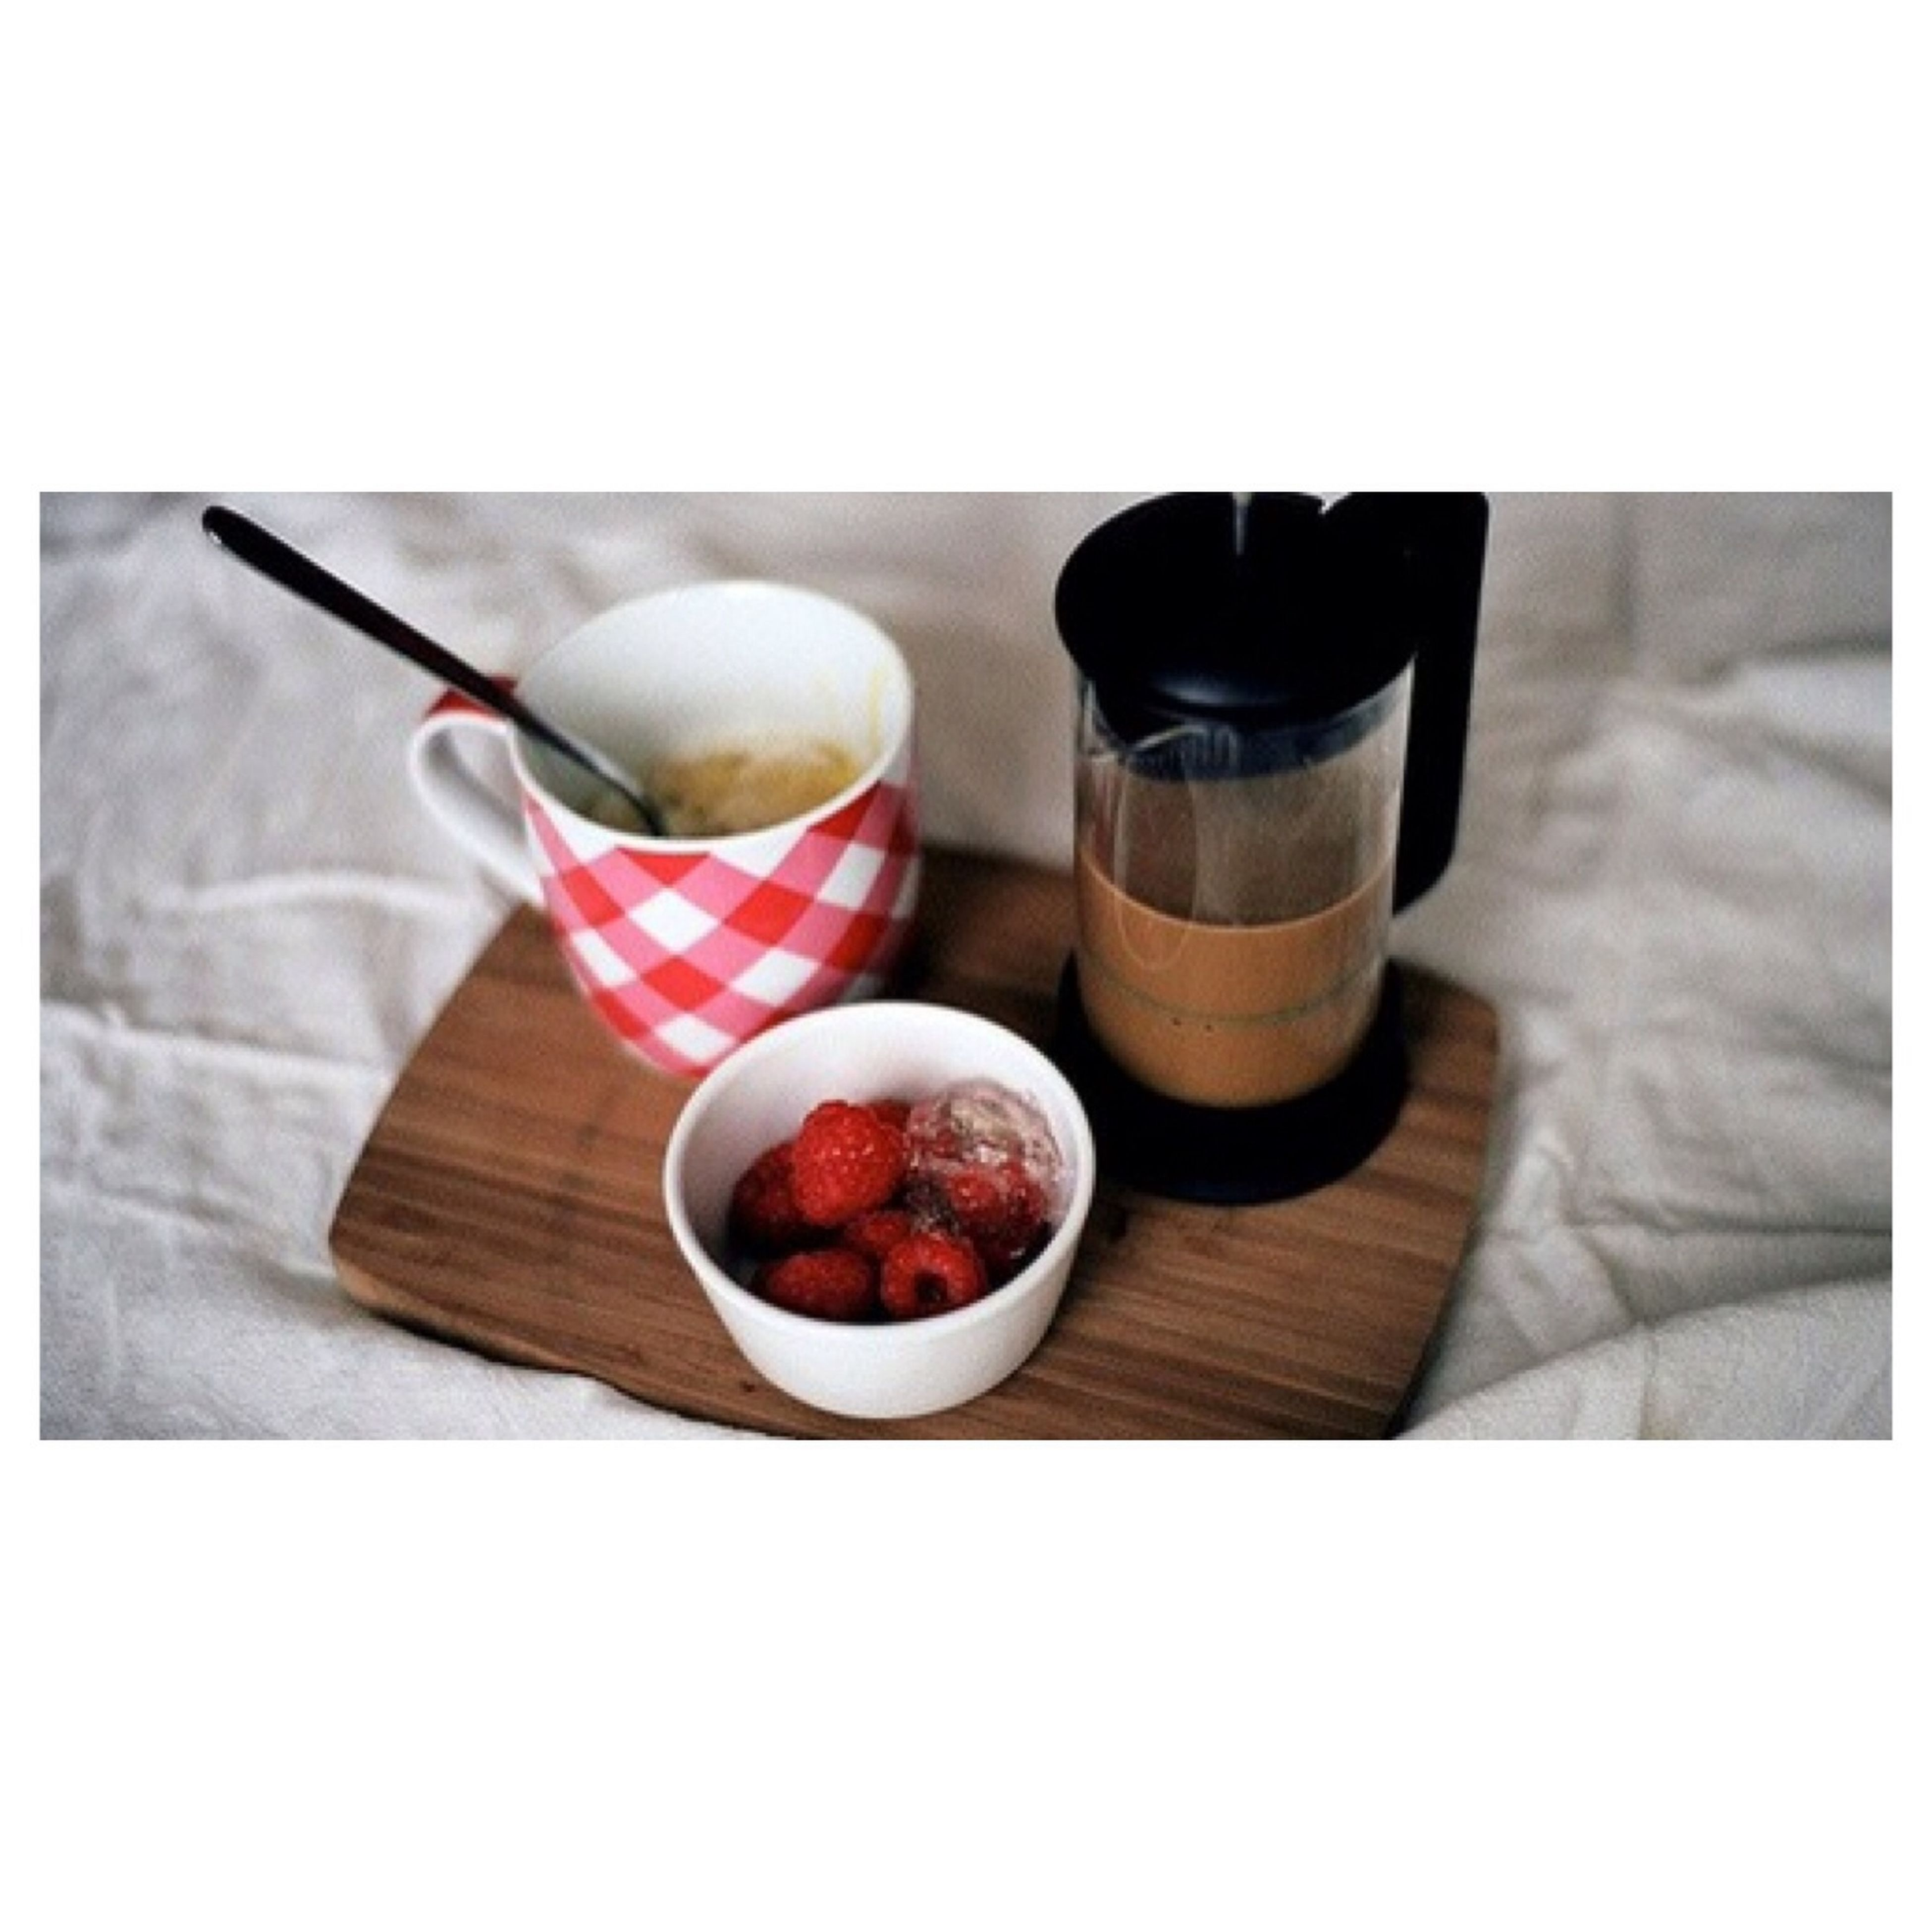 food and drink, still life, table, indoors, freshness, transfer print, drink, food, auto post production filter, refreshment, coffee cup, close-up, healthy eating, cup, drinking glass, high angle view, bowl, coffee - drink, spoon, no people